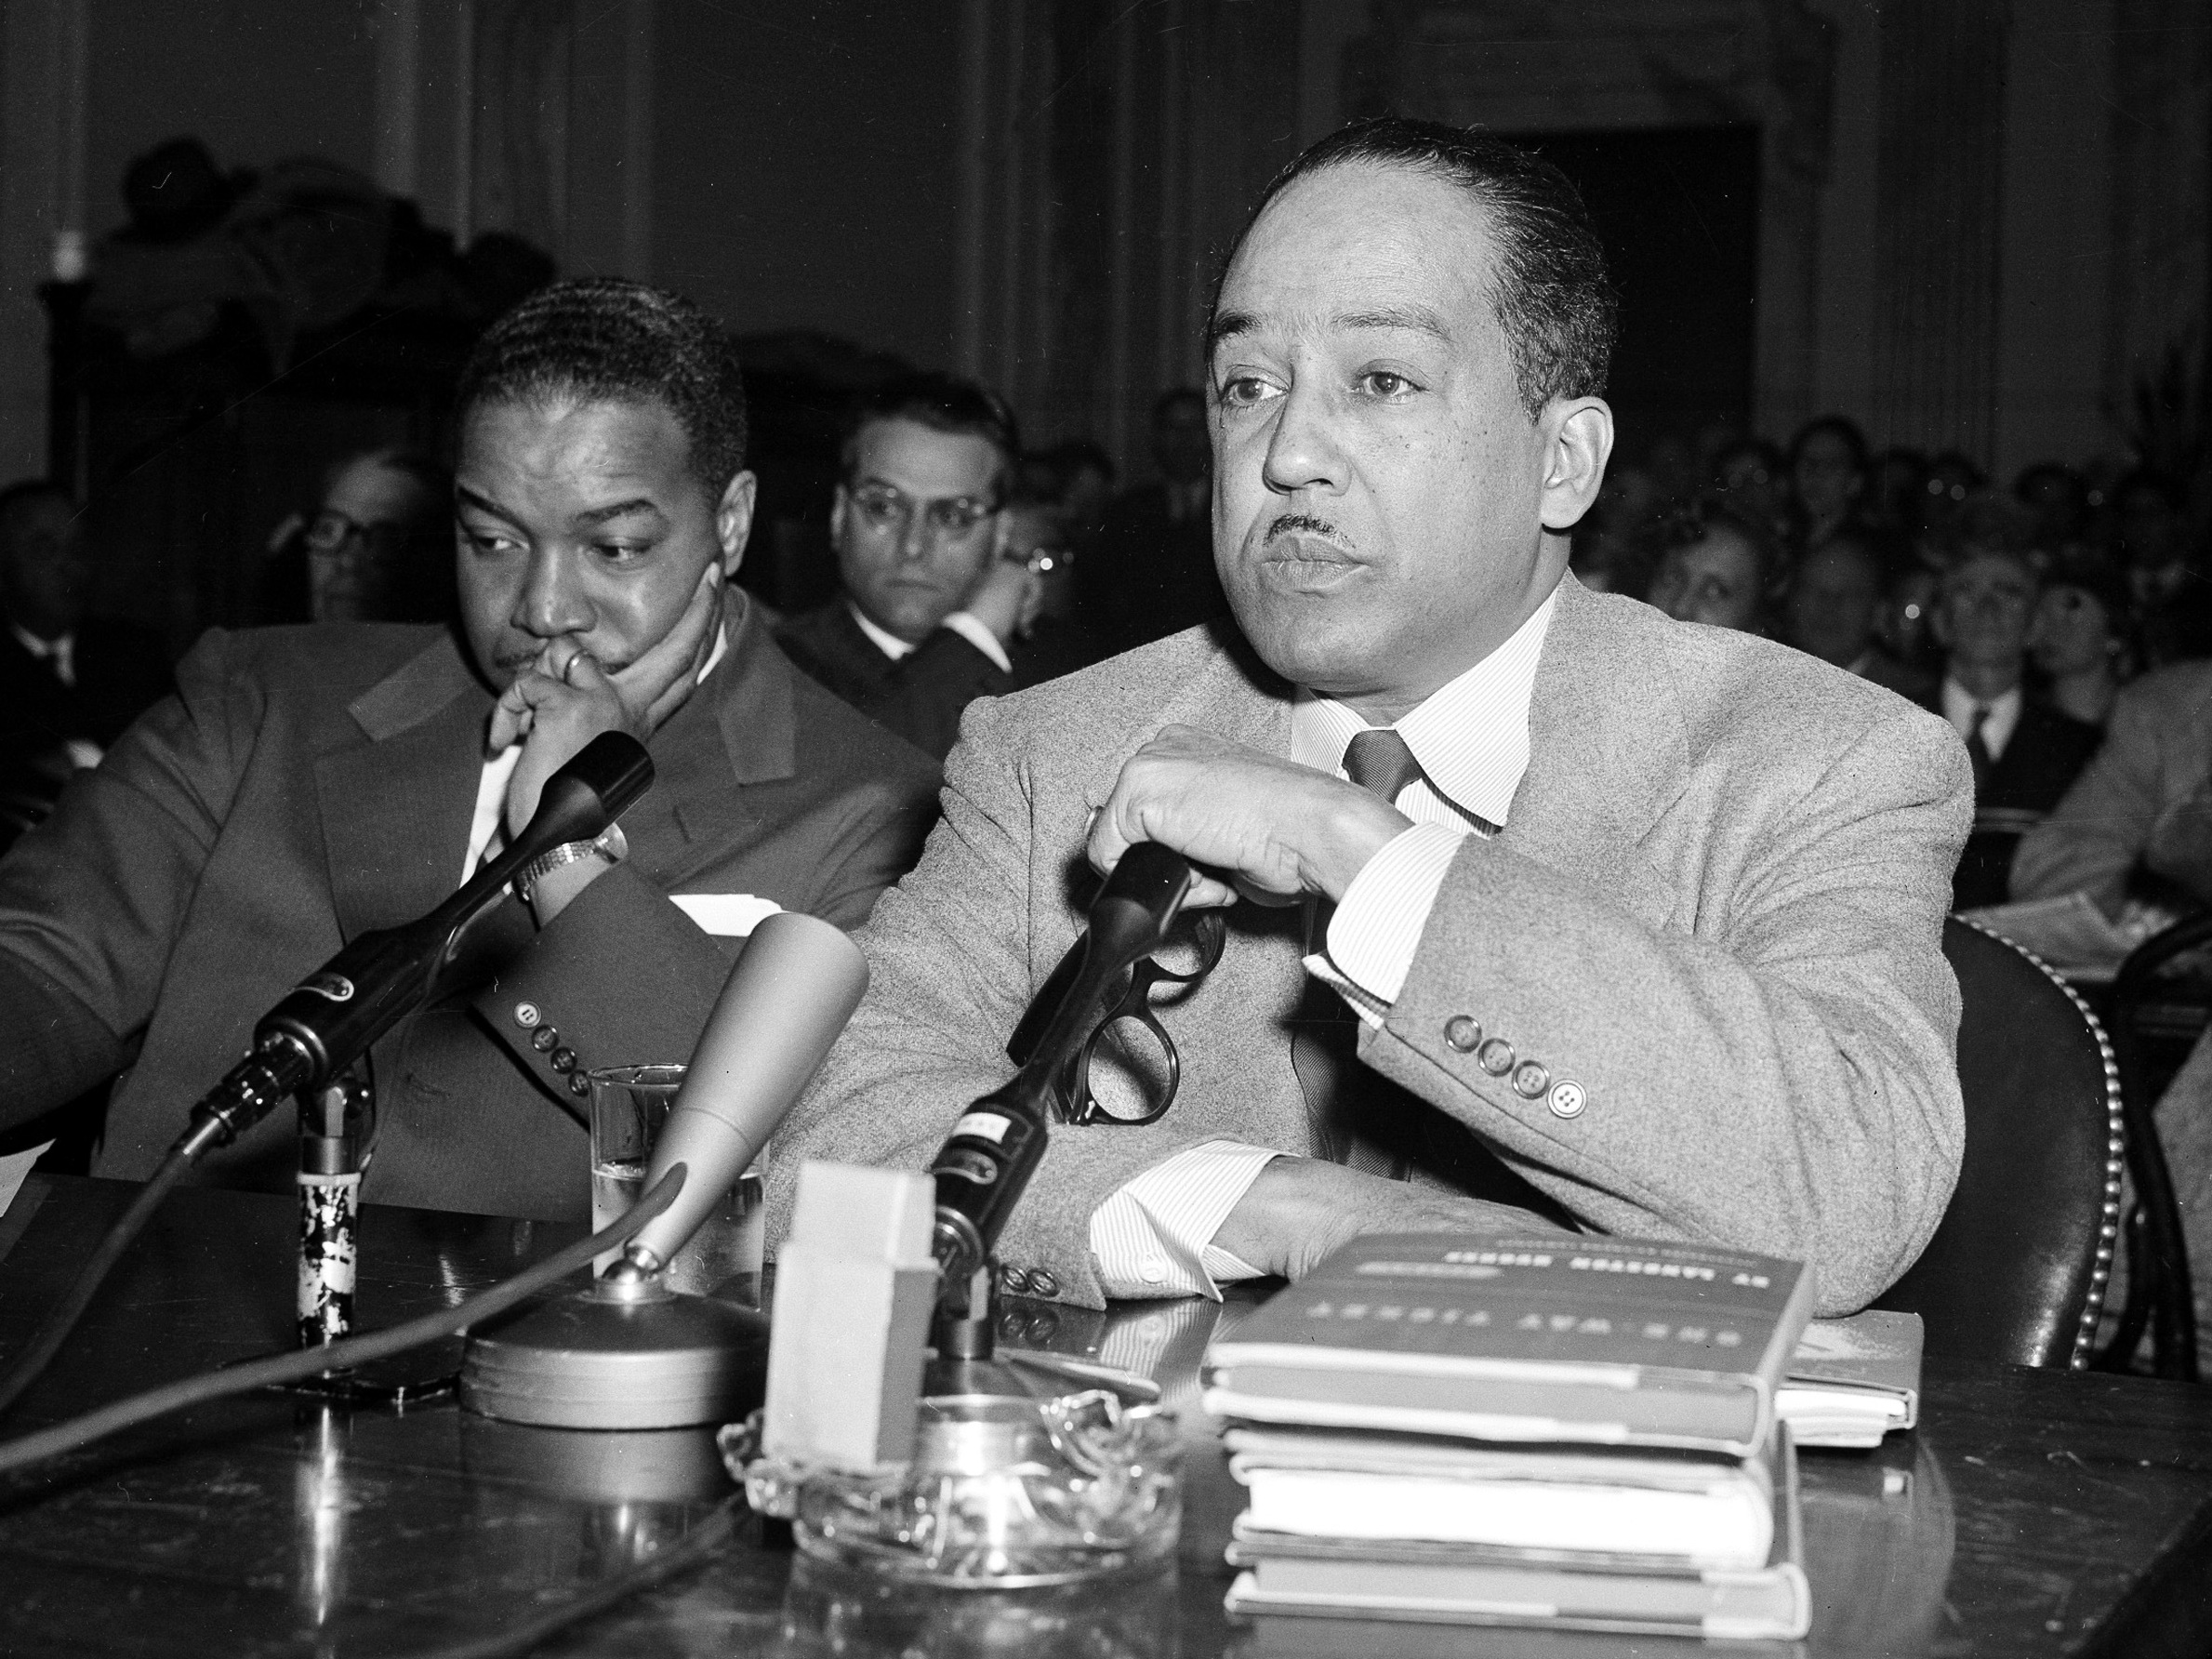 Tumultuous Relationships, But Not Much Gossip, In Langston Hughes' Letters